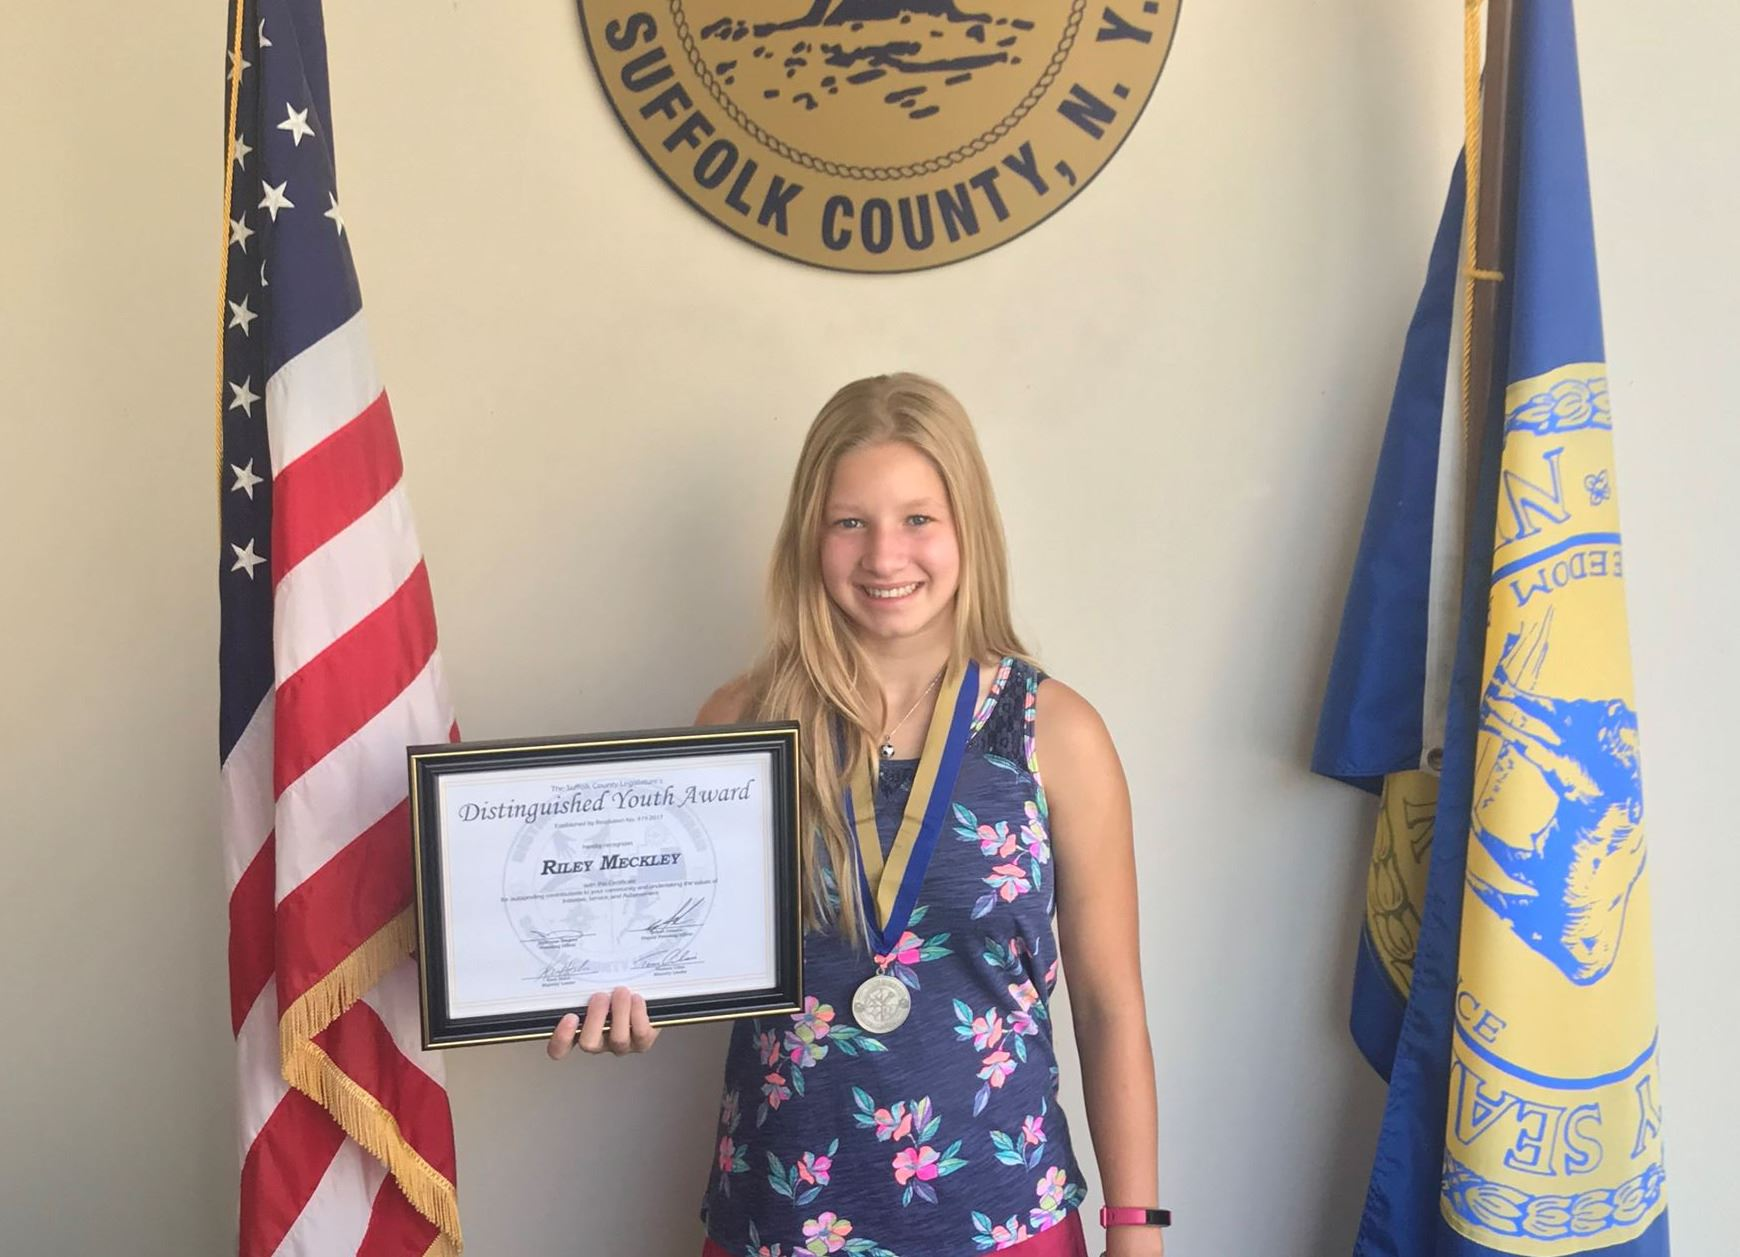 Riley Meckley Earns Silver in Legislature's Distinguished Youth Award program